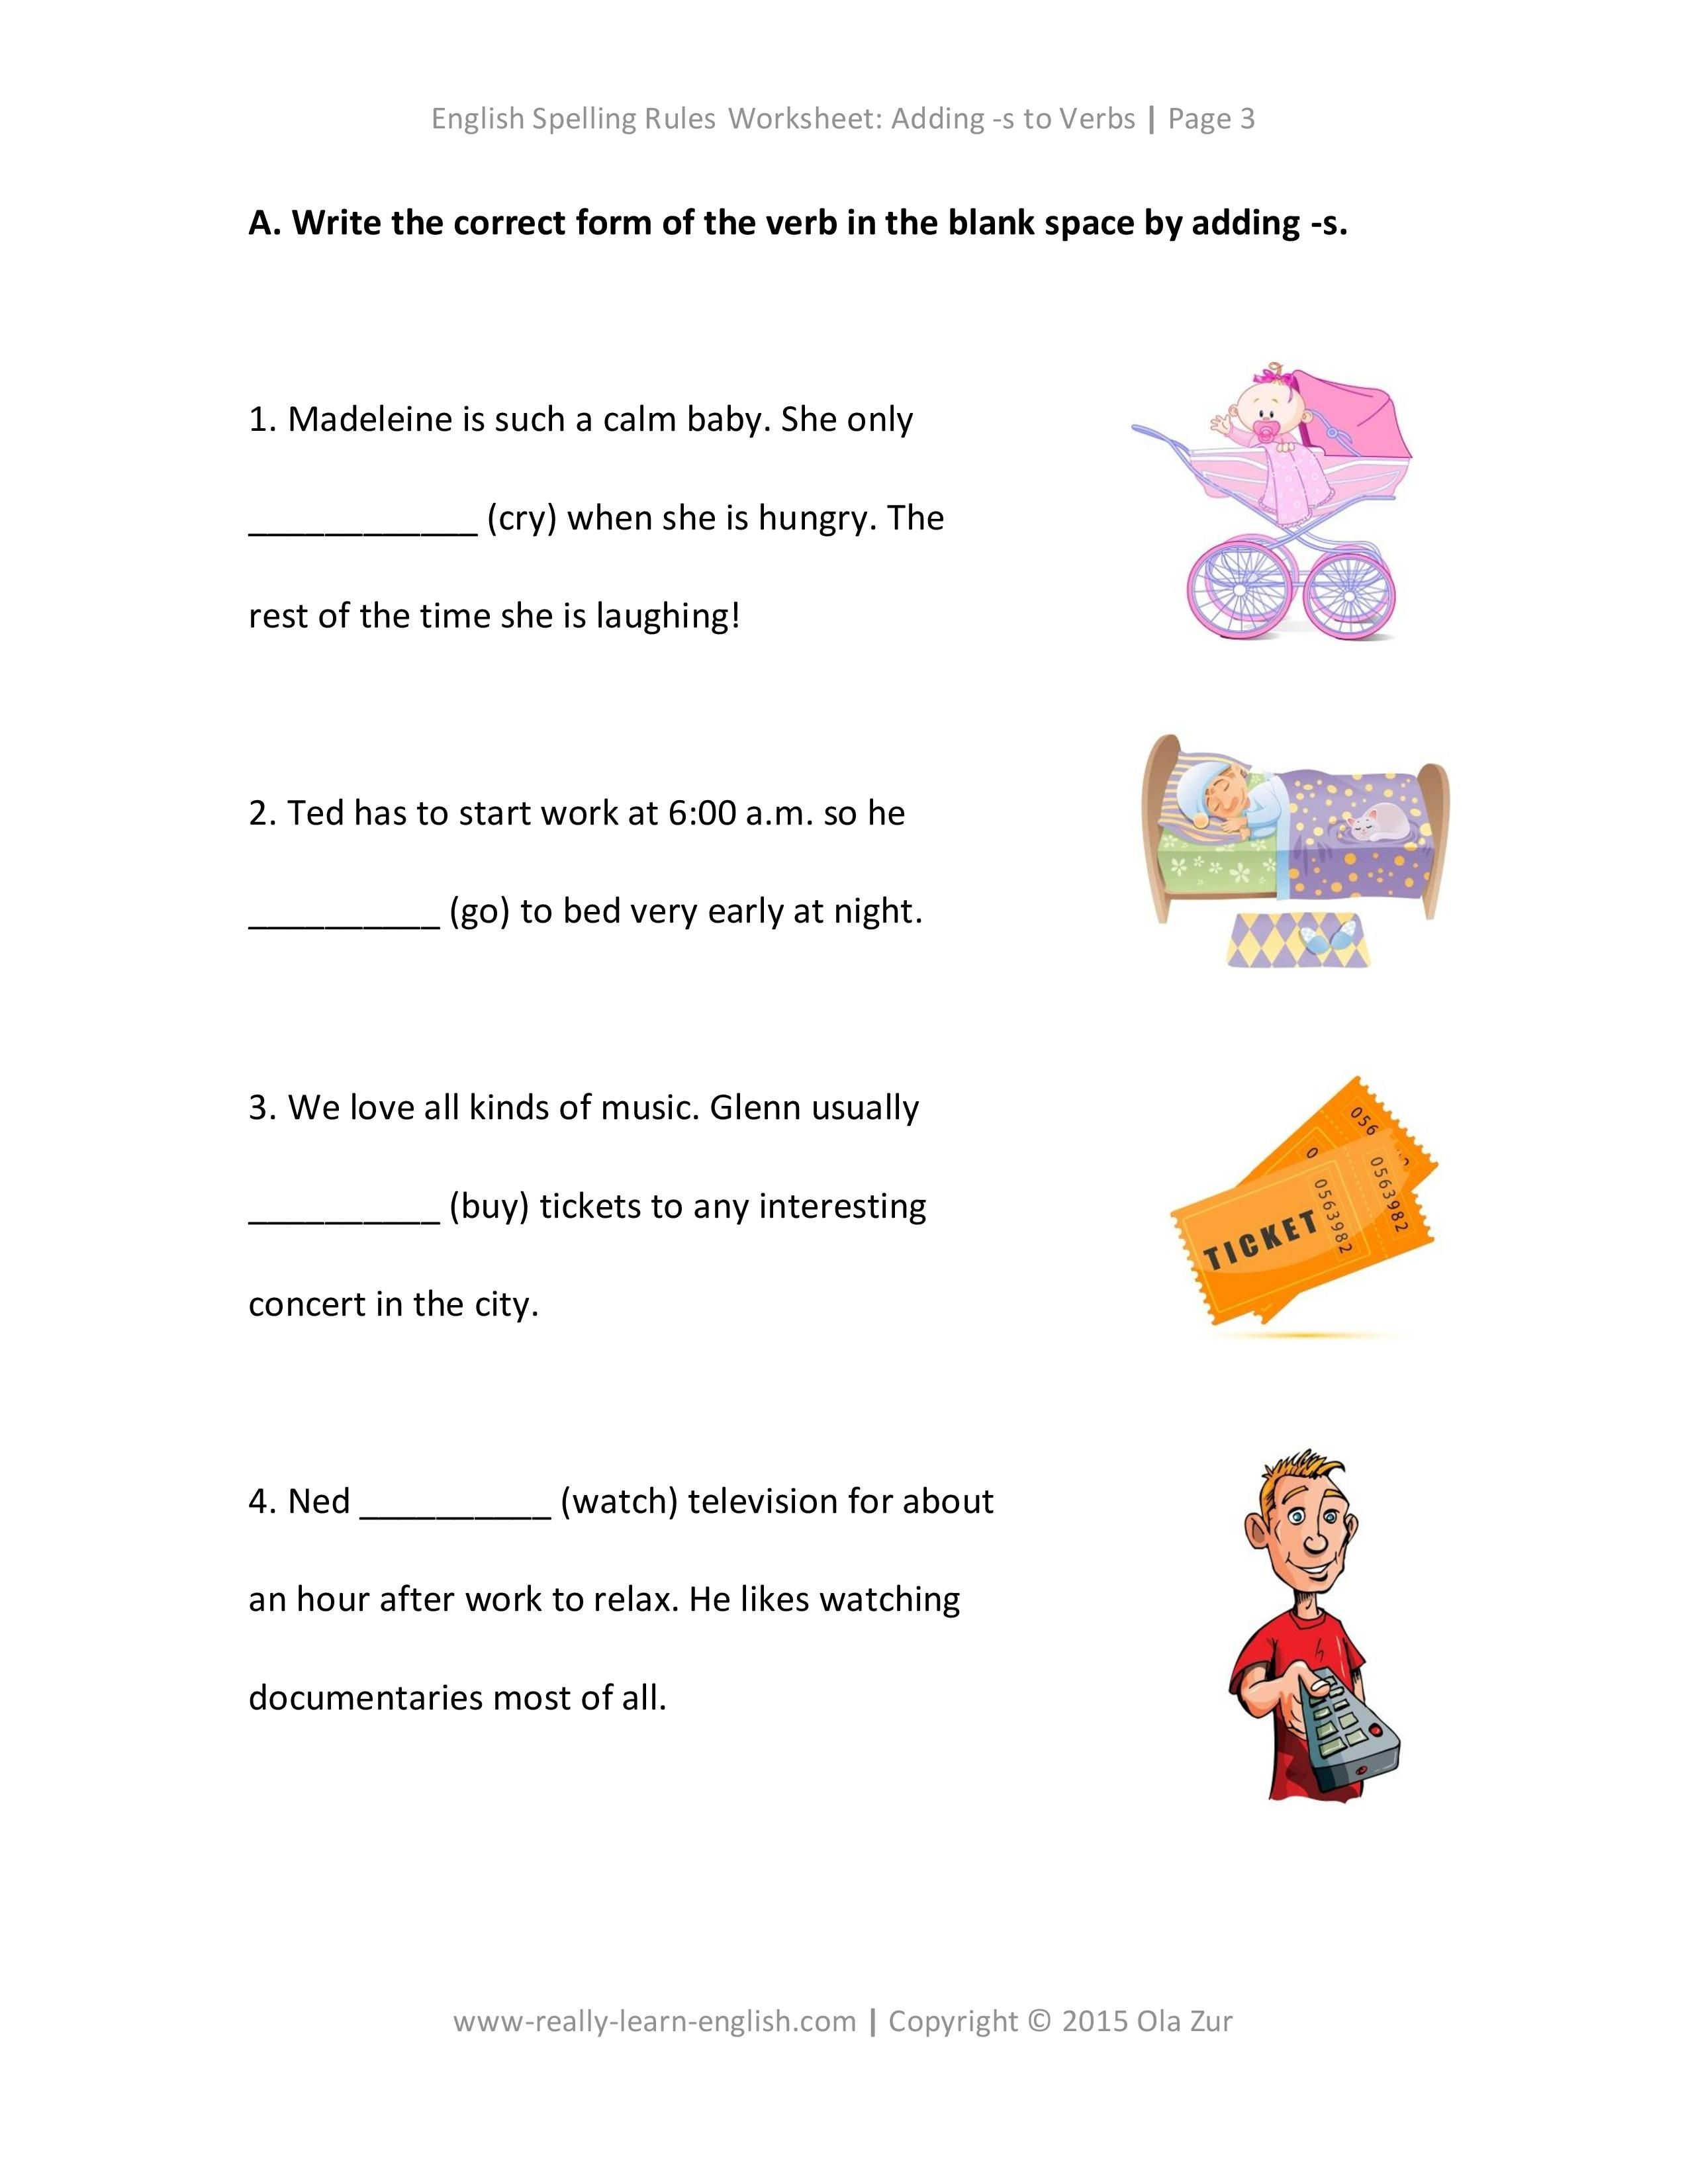 spelling rules how to add s to a verb teaching and learning english vocabulary grammar. Black Bedroom Furniture Sets. Home Design Ideas